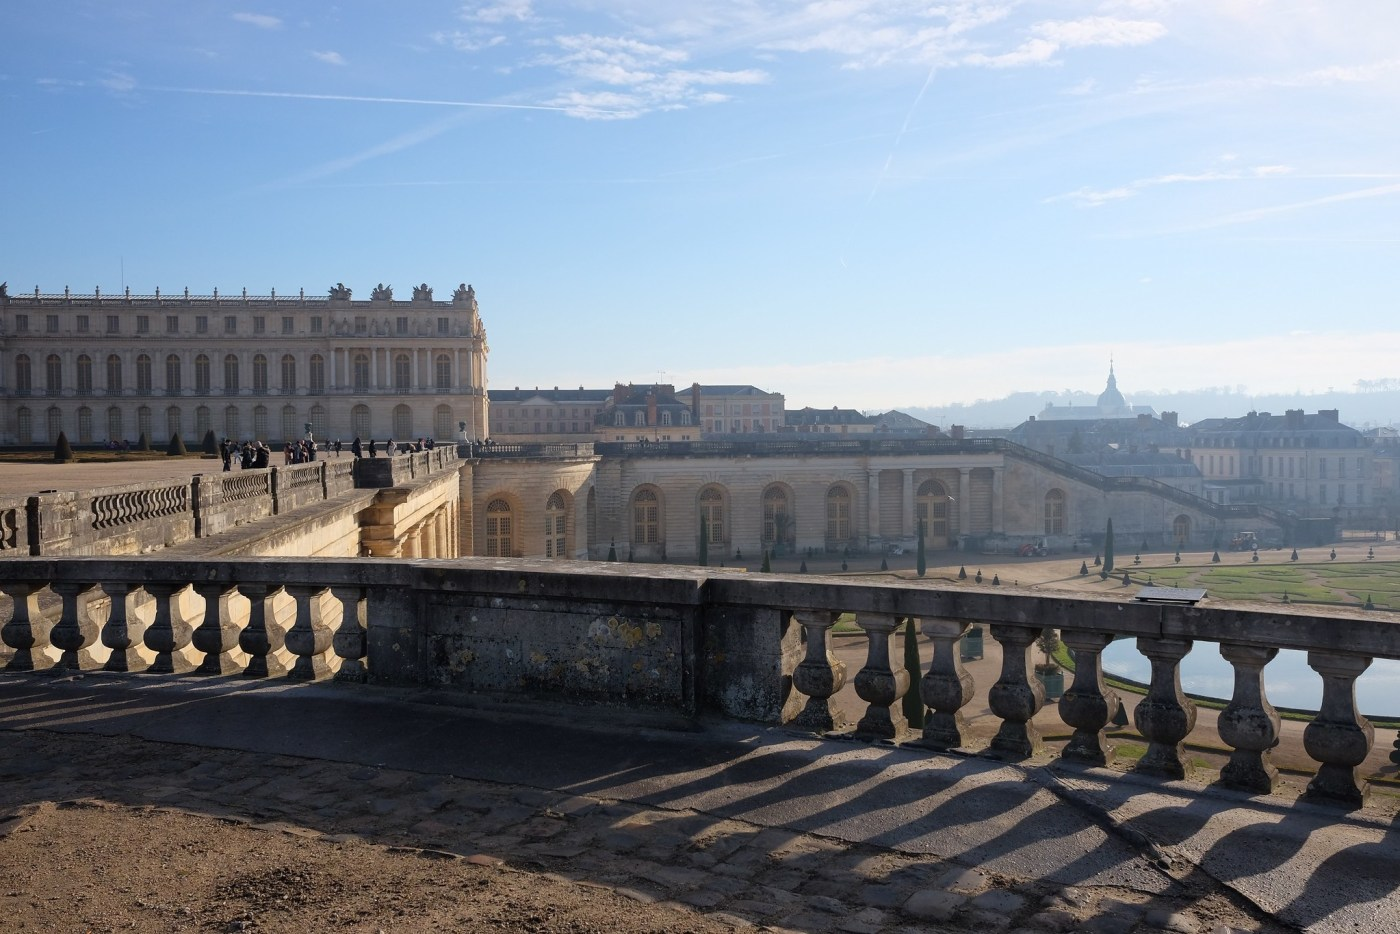 Grounds of the Palace Versailles